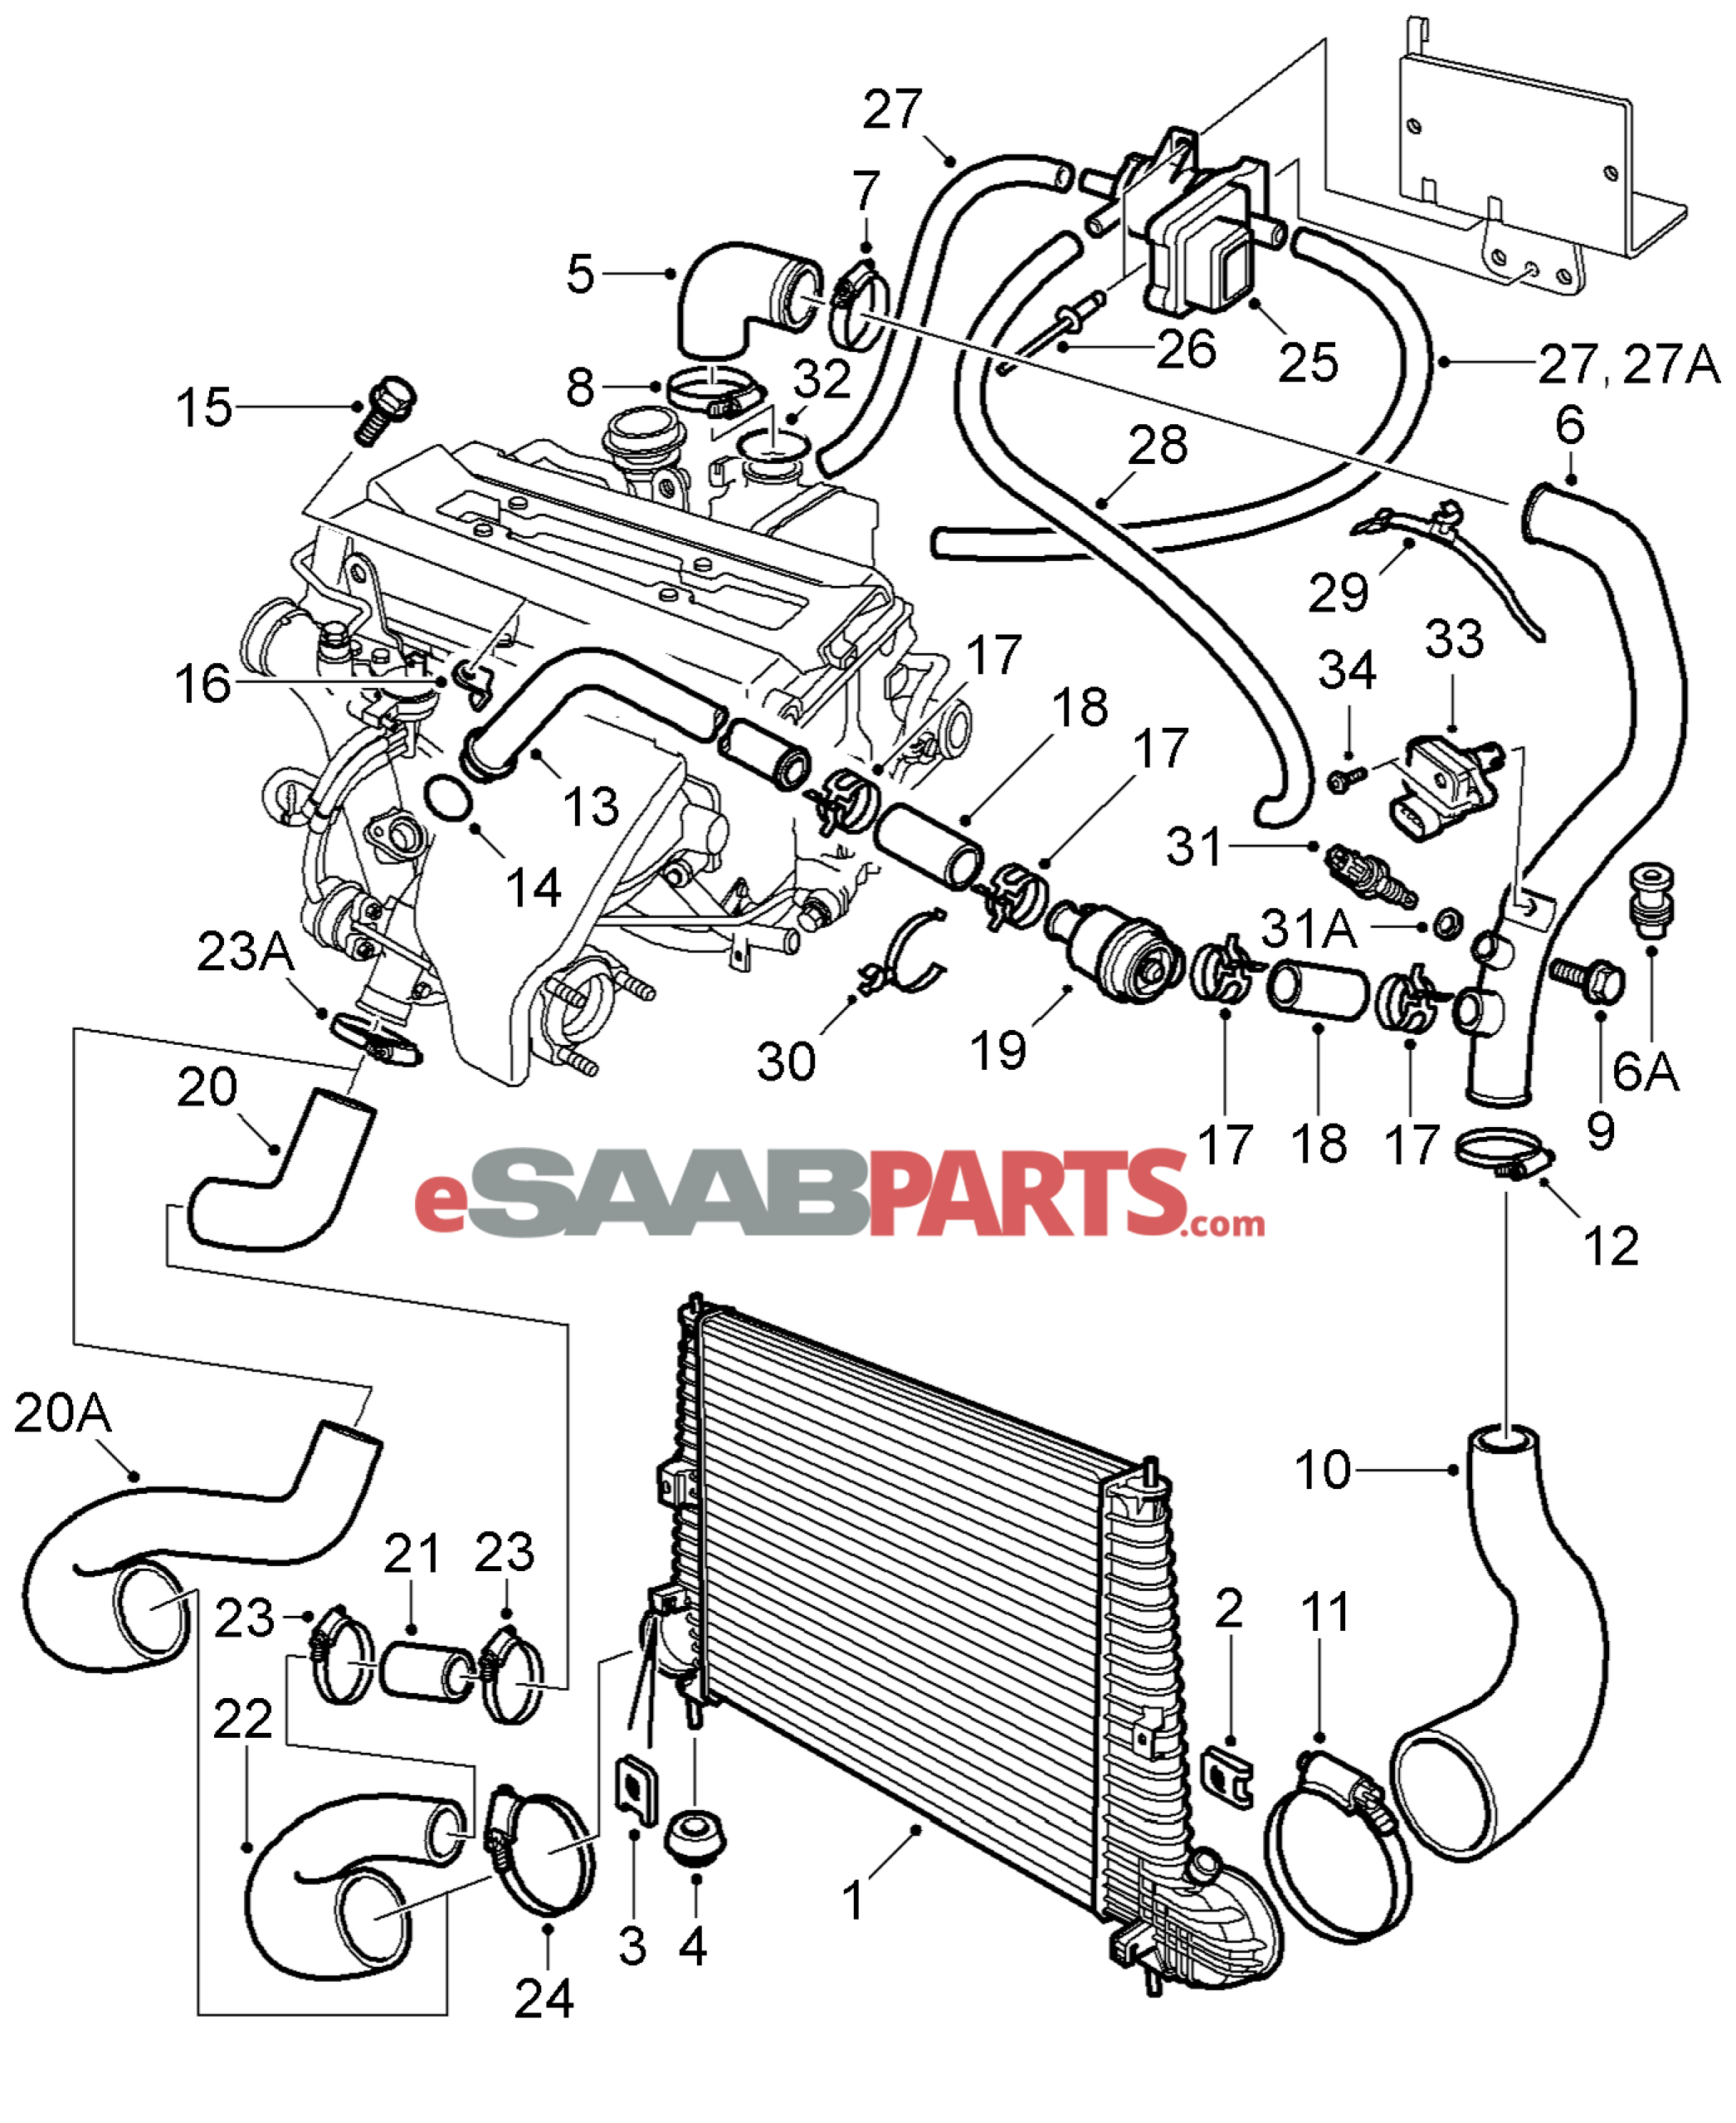 Showthread additionally 621 Toyota Hilux 24d 28d 30d Reduction Starter Oe 28100 54270 as well Coloriage H C3 A9licopt C3 A8re Militaire De Lavenir as well 2007 Toyota Ta a 2 7l Serpentine Belt Diagram besides T17488487 Show picture diagram vacuum hoses 1984. on ford 3 9 v6 engine diagram